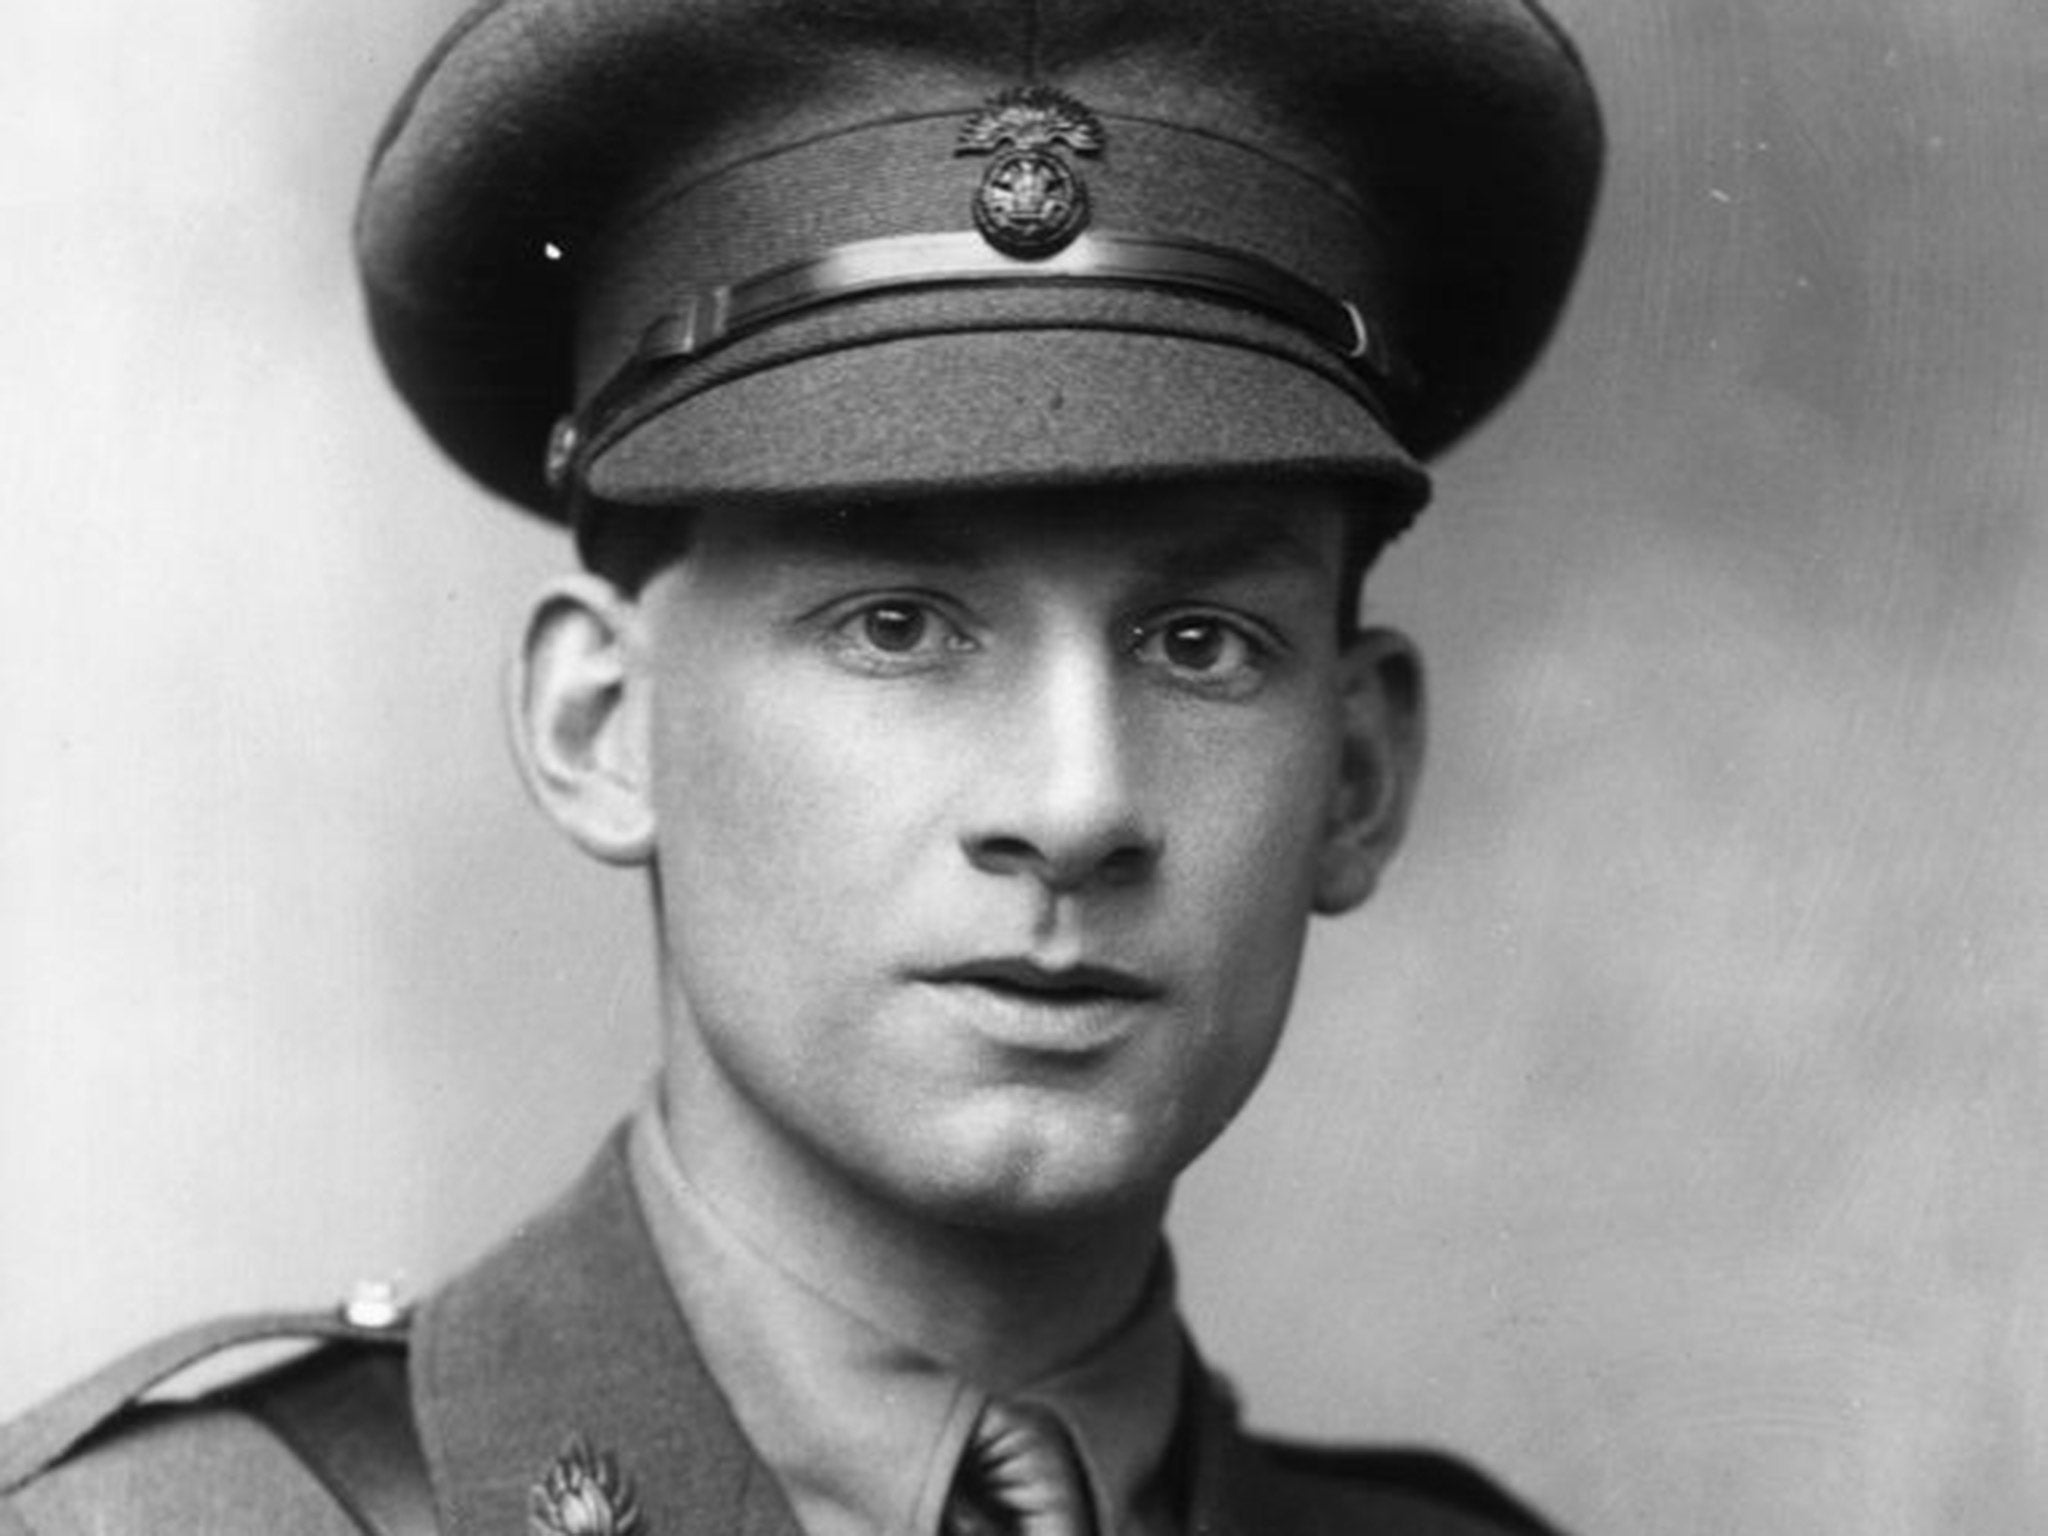 Siegfried Sassoon photo #7106, Siegfried Sassoon image